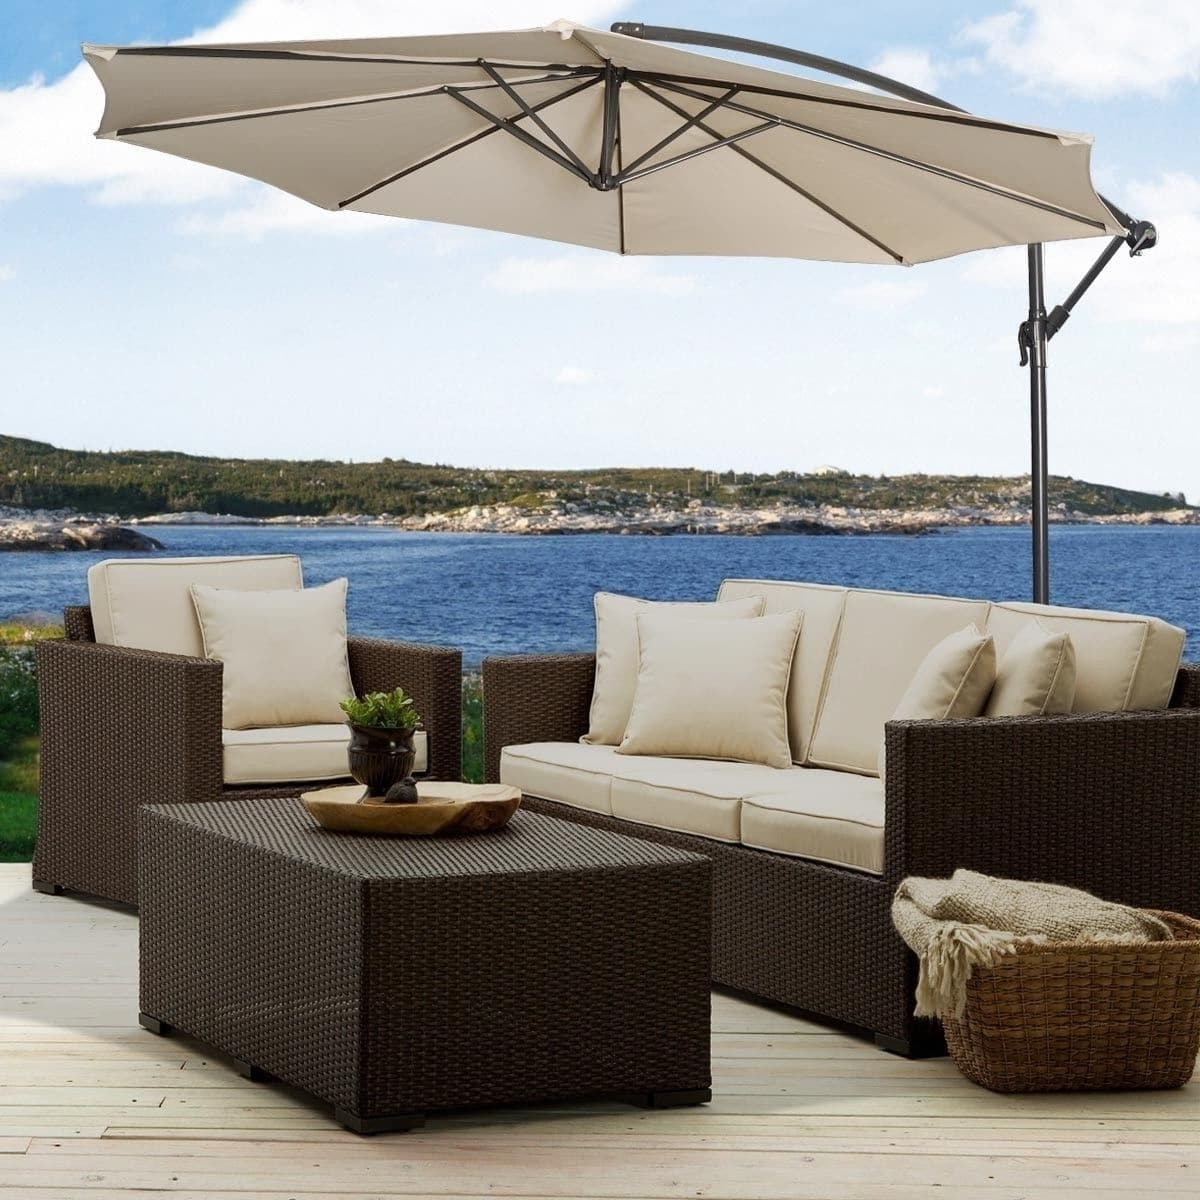 Shop Our Best Garden & Patio Deals Online (View 15 of 20)